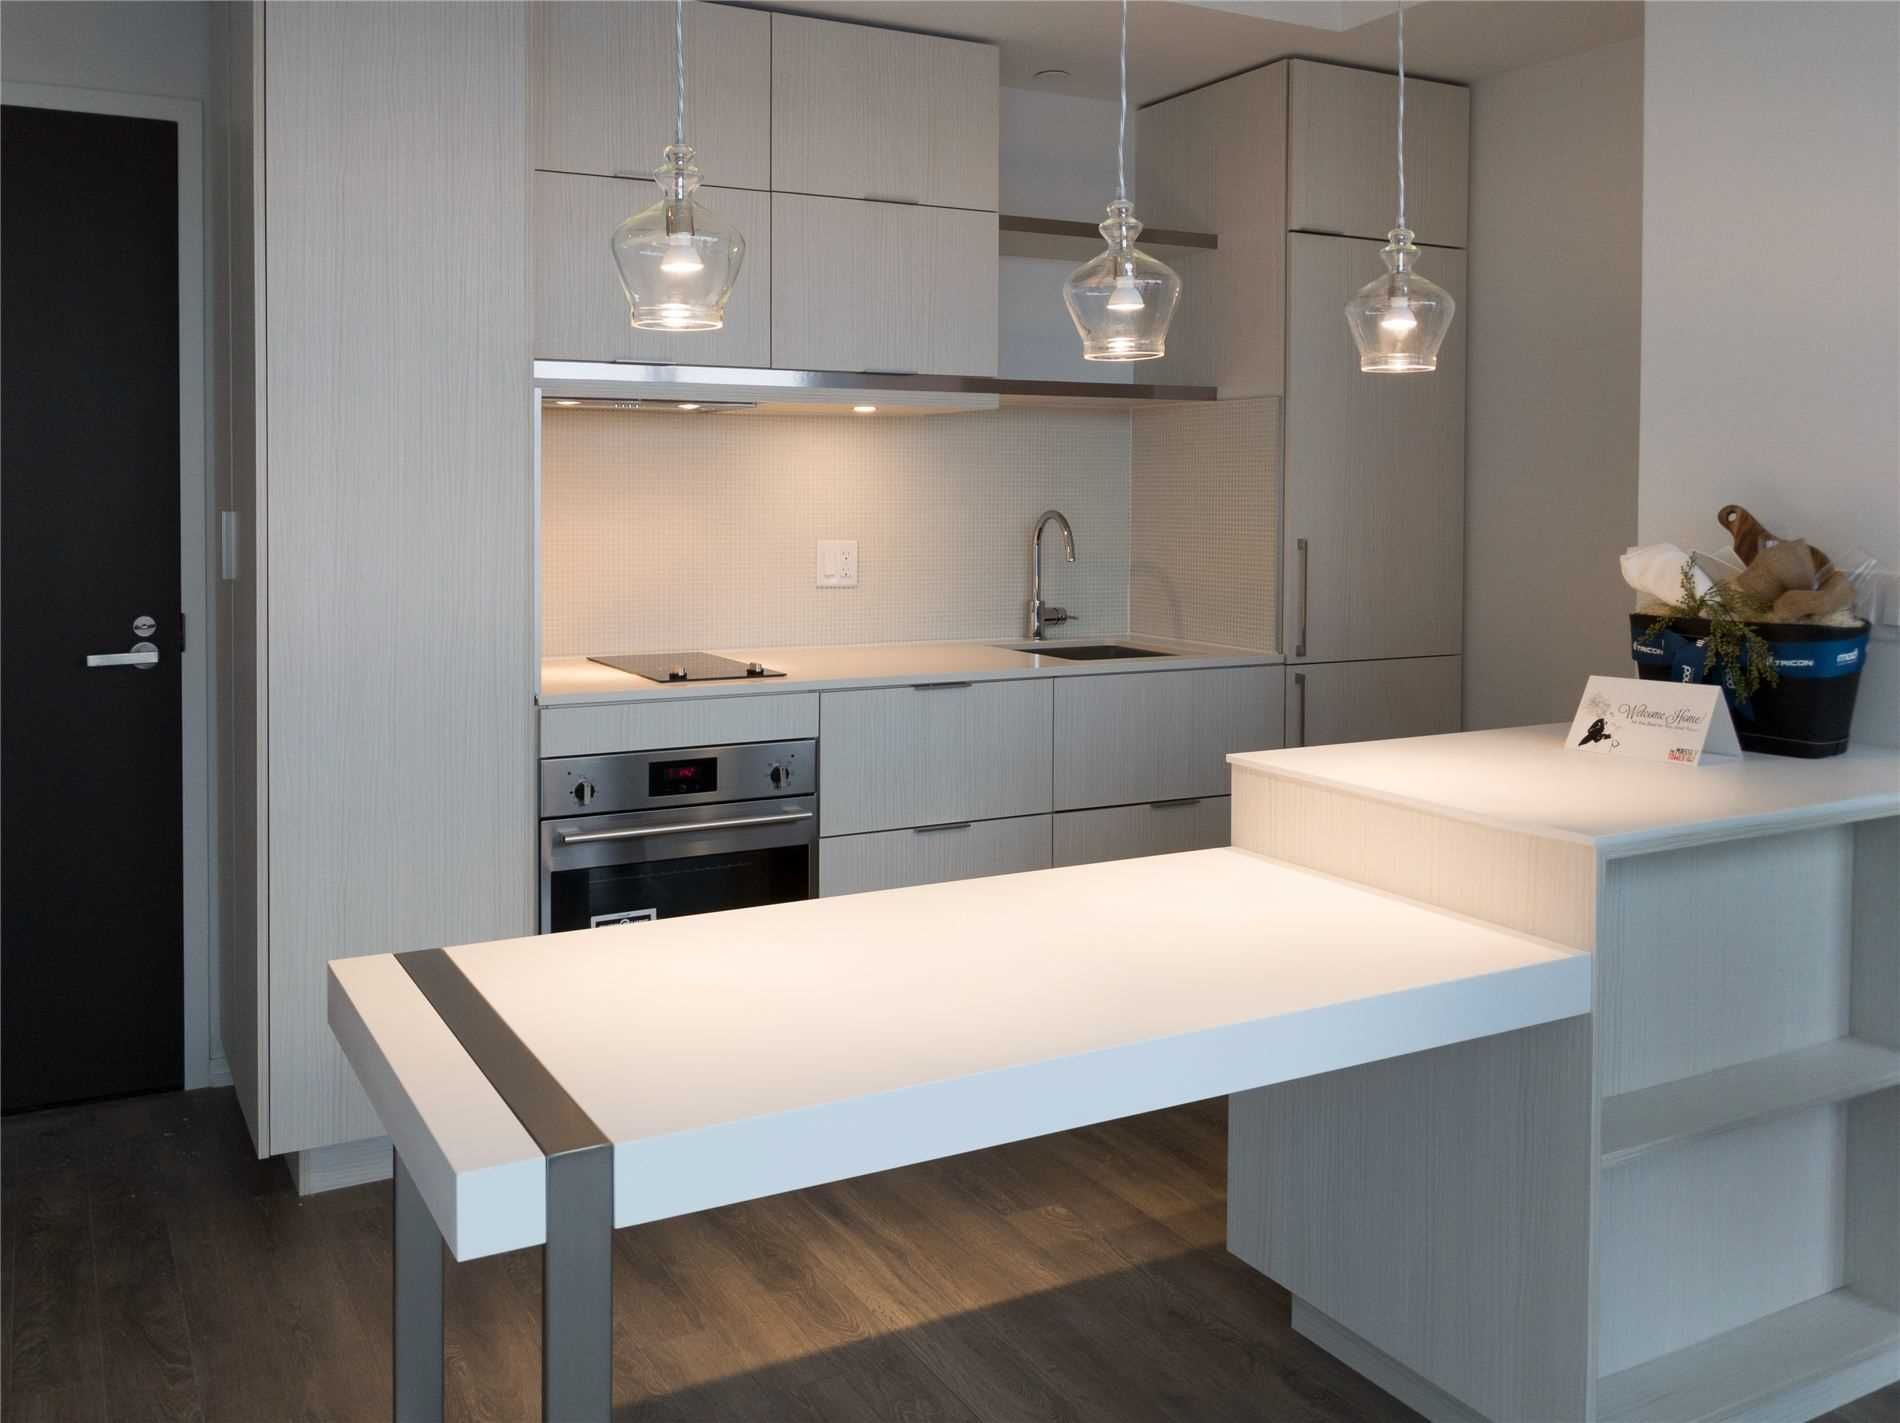 197 Yonge St, unit 5413 for rent in Toronto - image #2